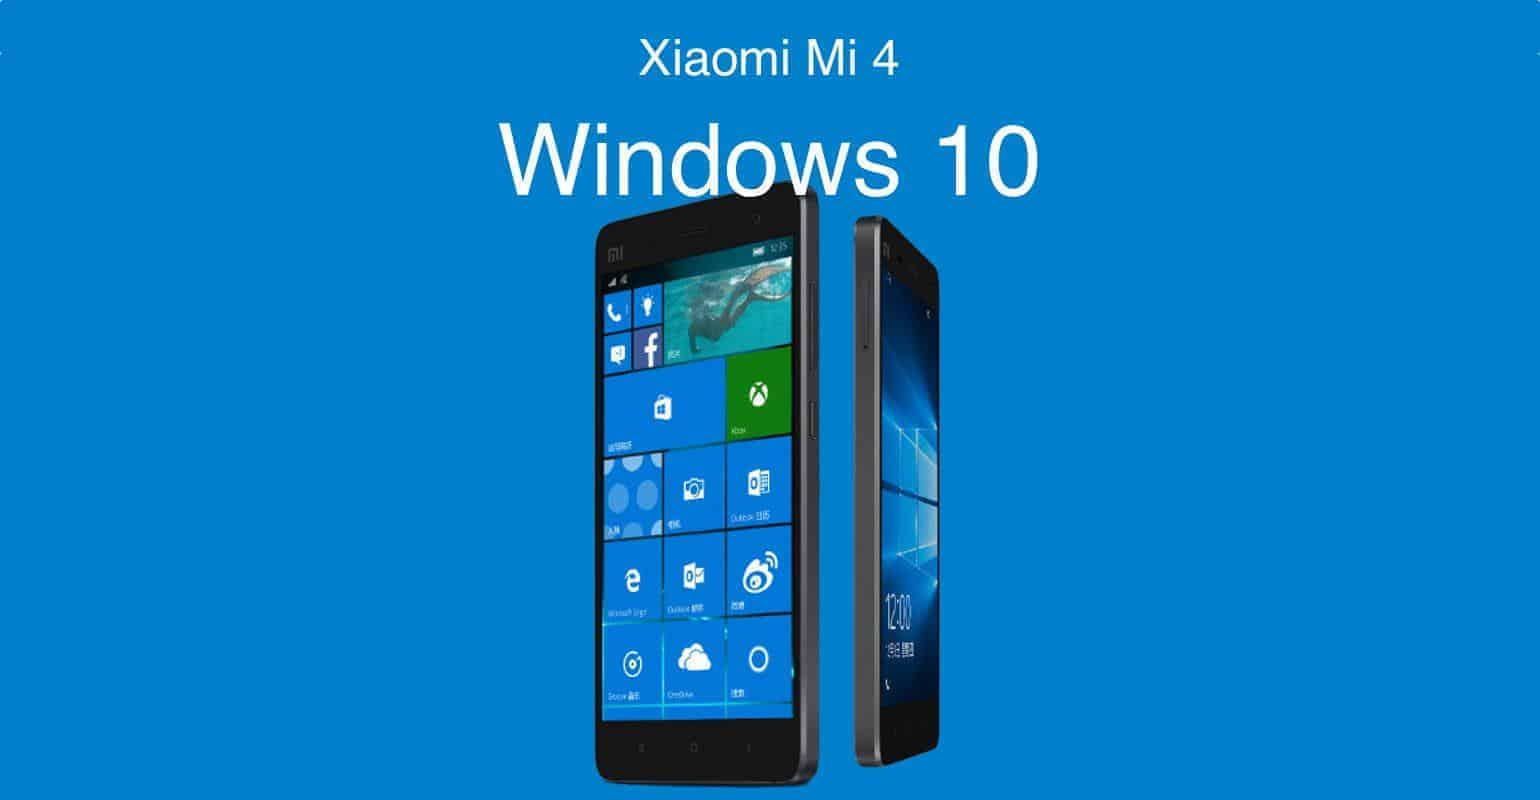 Windows 10 vanaf 3 december te installeren op Xiaomi Mi 4